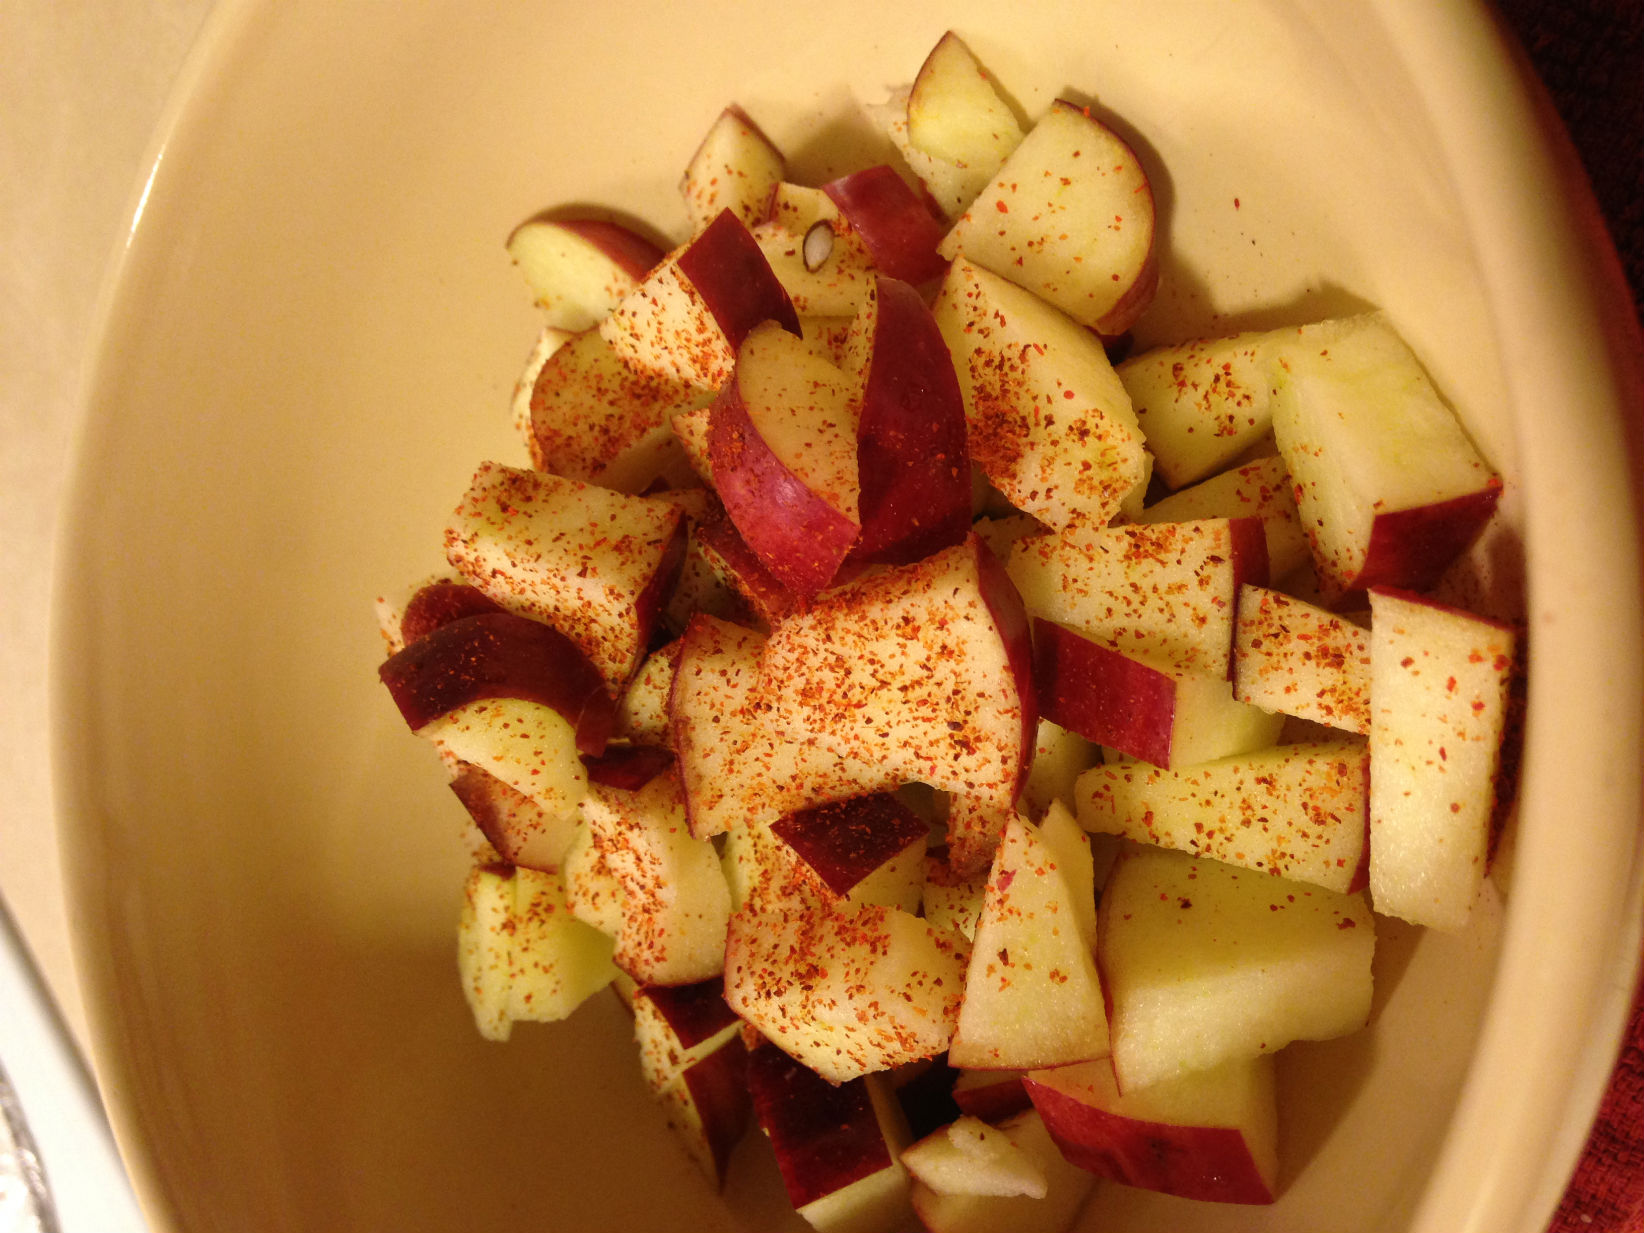 College Cuisine: Microwaved Cinnamon Apples